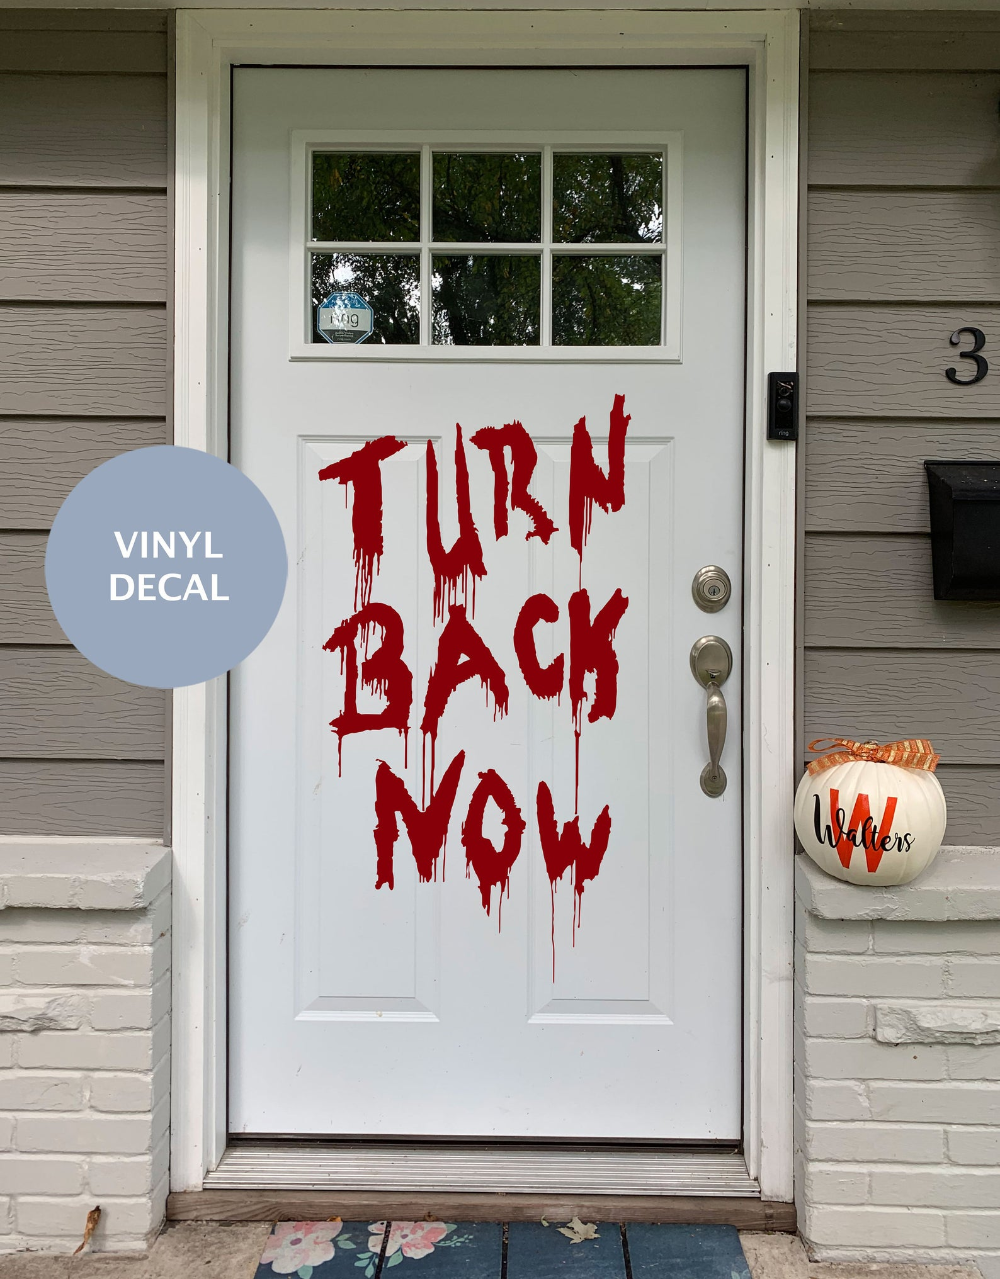 """Add a spooky Halloween Door Decal this Halloween to add a creepy decoration to your Trick r' Treaters this year. This can also be used as a Window Decal. Take your Halloween Decor to another scary level this year with some Door and Window decals! These work on any lightly textured surface.  📦Contents📦 ONE self-adhesive Turn Back Now DECAL Matte wall decal with transfer tape Size of decal (please choose size on checkout) Installation instructions View our shop for more amazing HALLOWEEN designs here. https://www.etsy.com/shop/HarborDesignCo?ref=shopsection_shophome_leftnav&section_id=20229096 View our Entire Shop here. https://www.etsy.com/shop/HarborDesignCo?ref=shopsection_shophome_leftnav#reviews 🏃♂️🏃♂️🏃♂️ NEED A RUSH??? Within 7 Business days also check out with this listing to make sure your order arrives on time! https://www.etsy.com/listing/717974353/rush-order-harbor-design-co-faster-order?ref=shop_home_active_4&frs=1 ‼️‼️Decals are removable but not reusable. ‼️‼️ -The color of your surface will be the """"background color"""" of the pattern.  -Some installation work will be required!  -Vinyl is meant for smooth non rough surface. Different surfaces may have different effects for stickiness and longevity of decals life."""